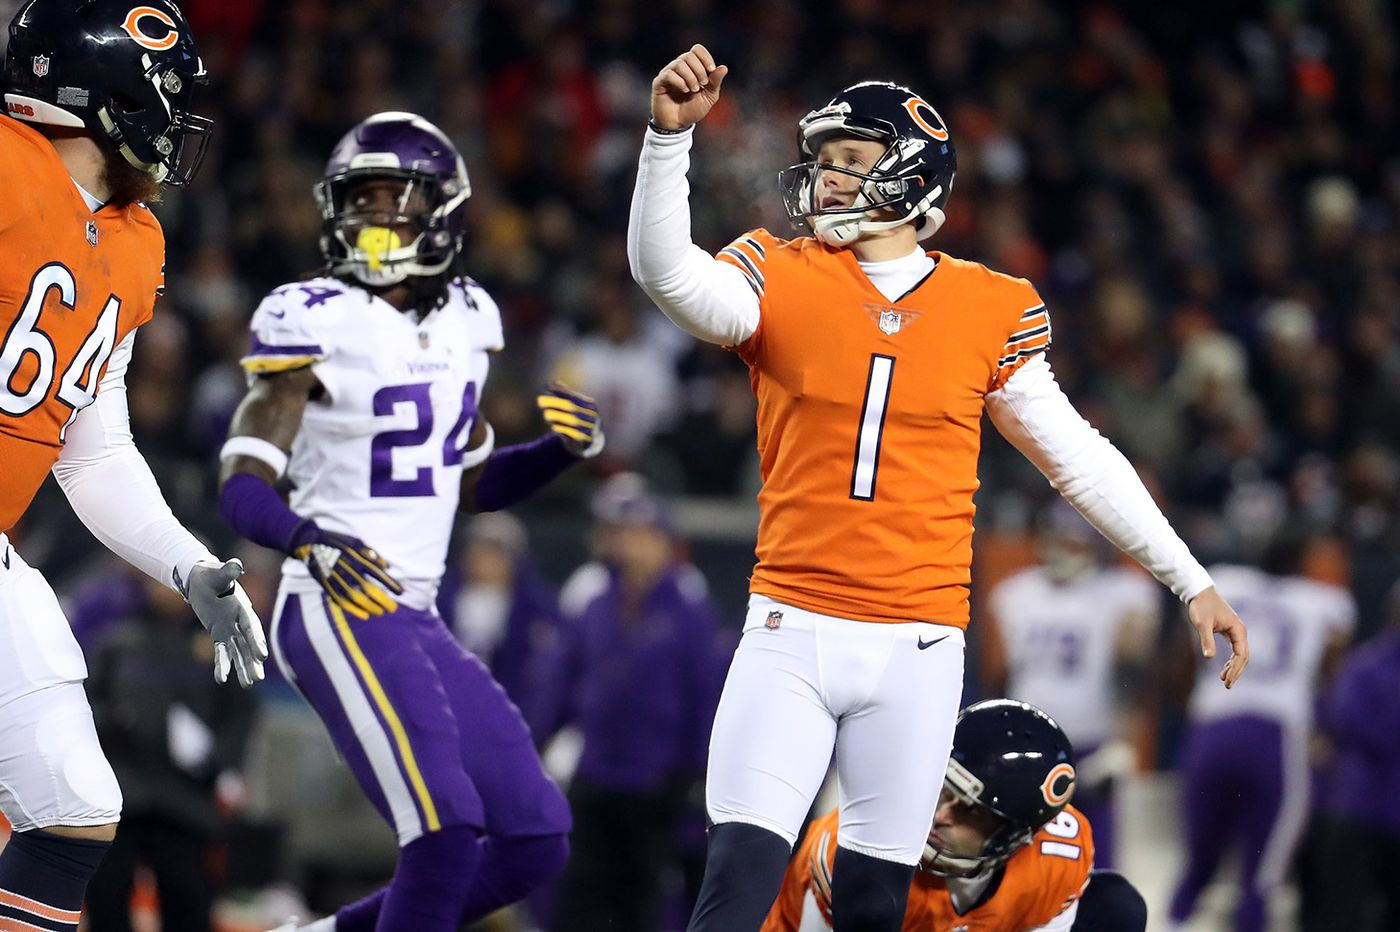 Will former Eagles kicker Cody Parkey be the difference for the Bears on Sunday?